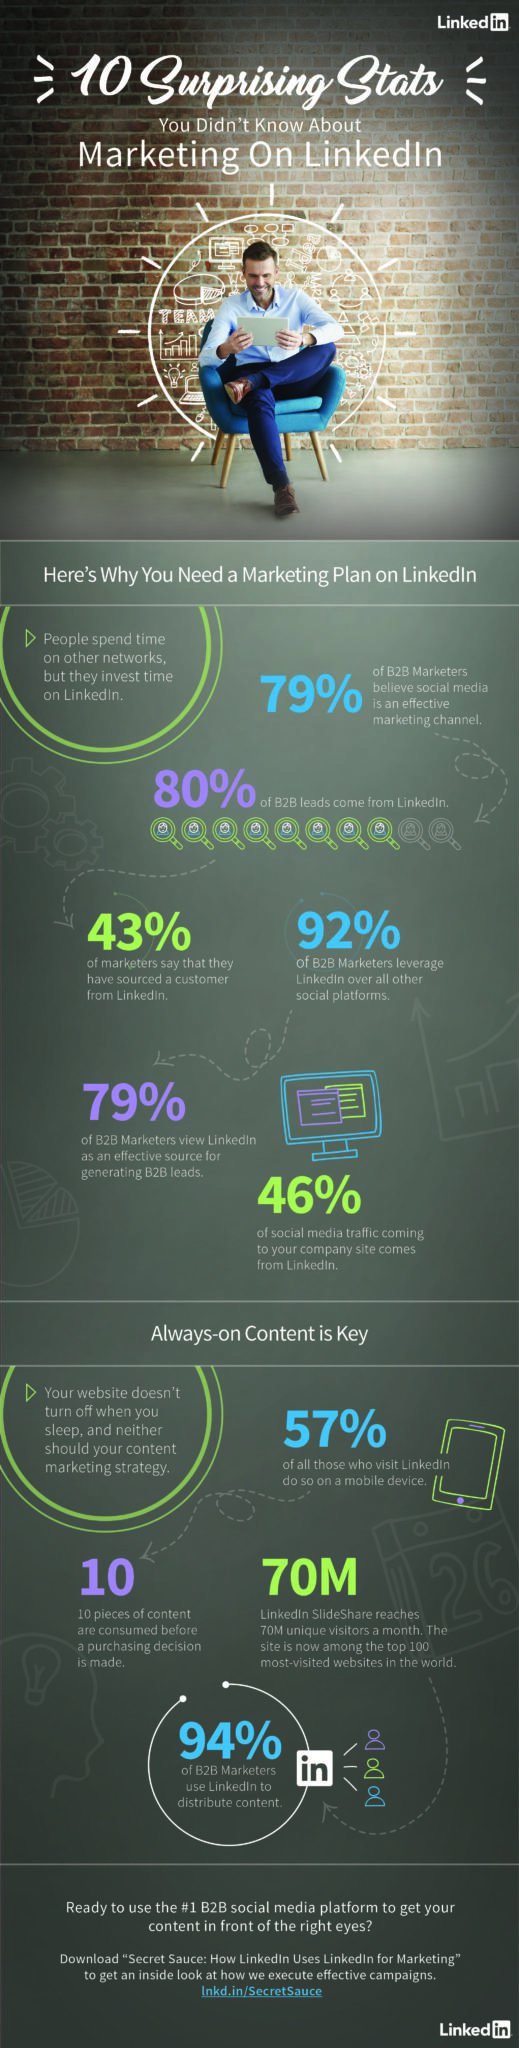 B2B Marketing on LinkedIn: 10 Surprising Stats You Need to Know [INFOGRAPHIC]